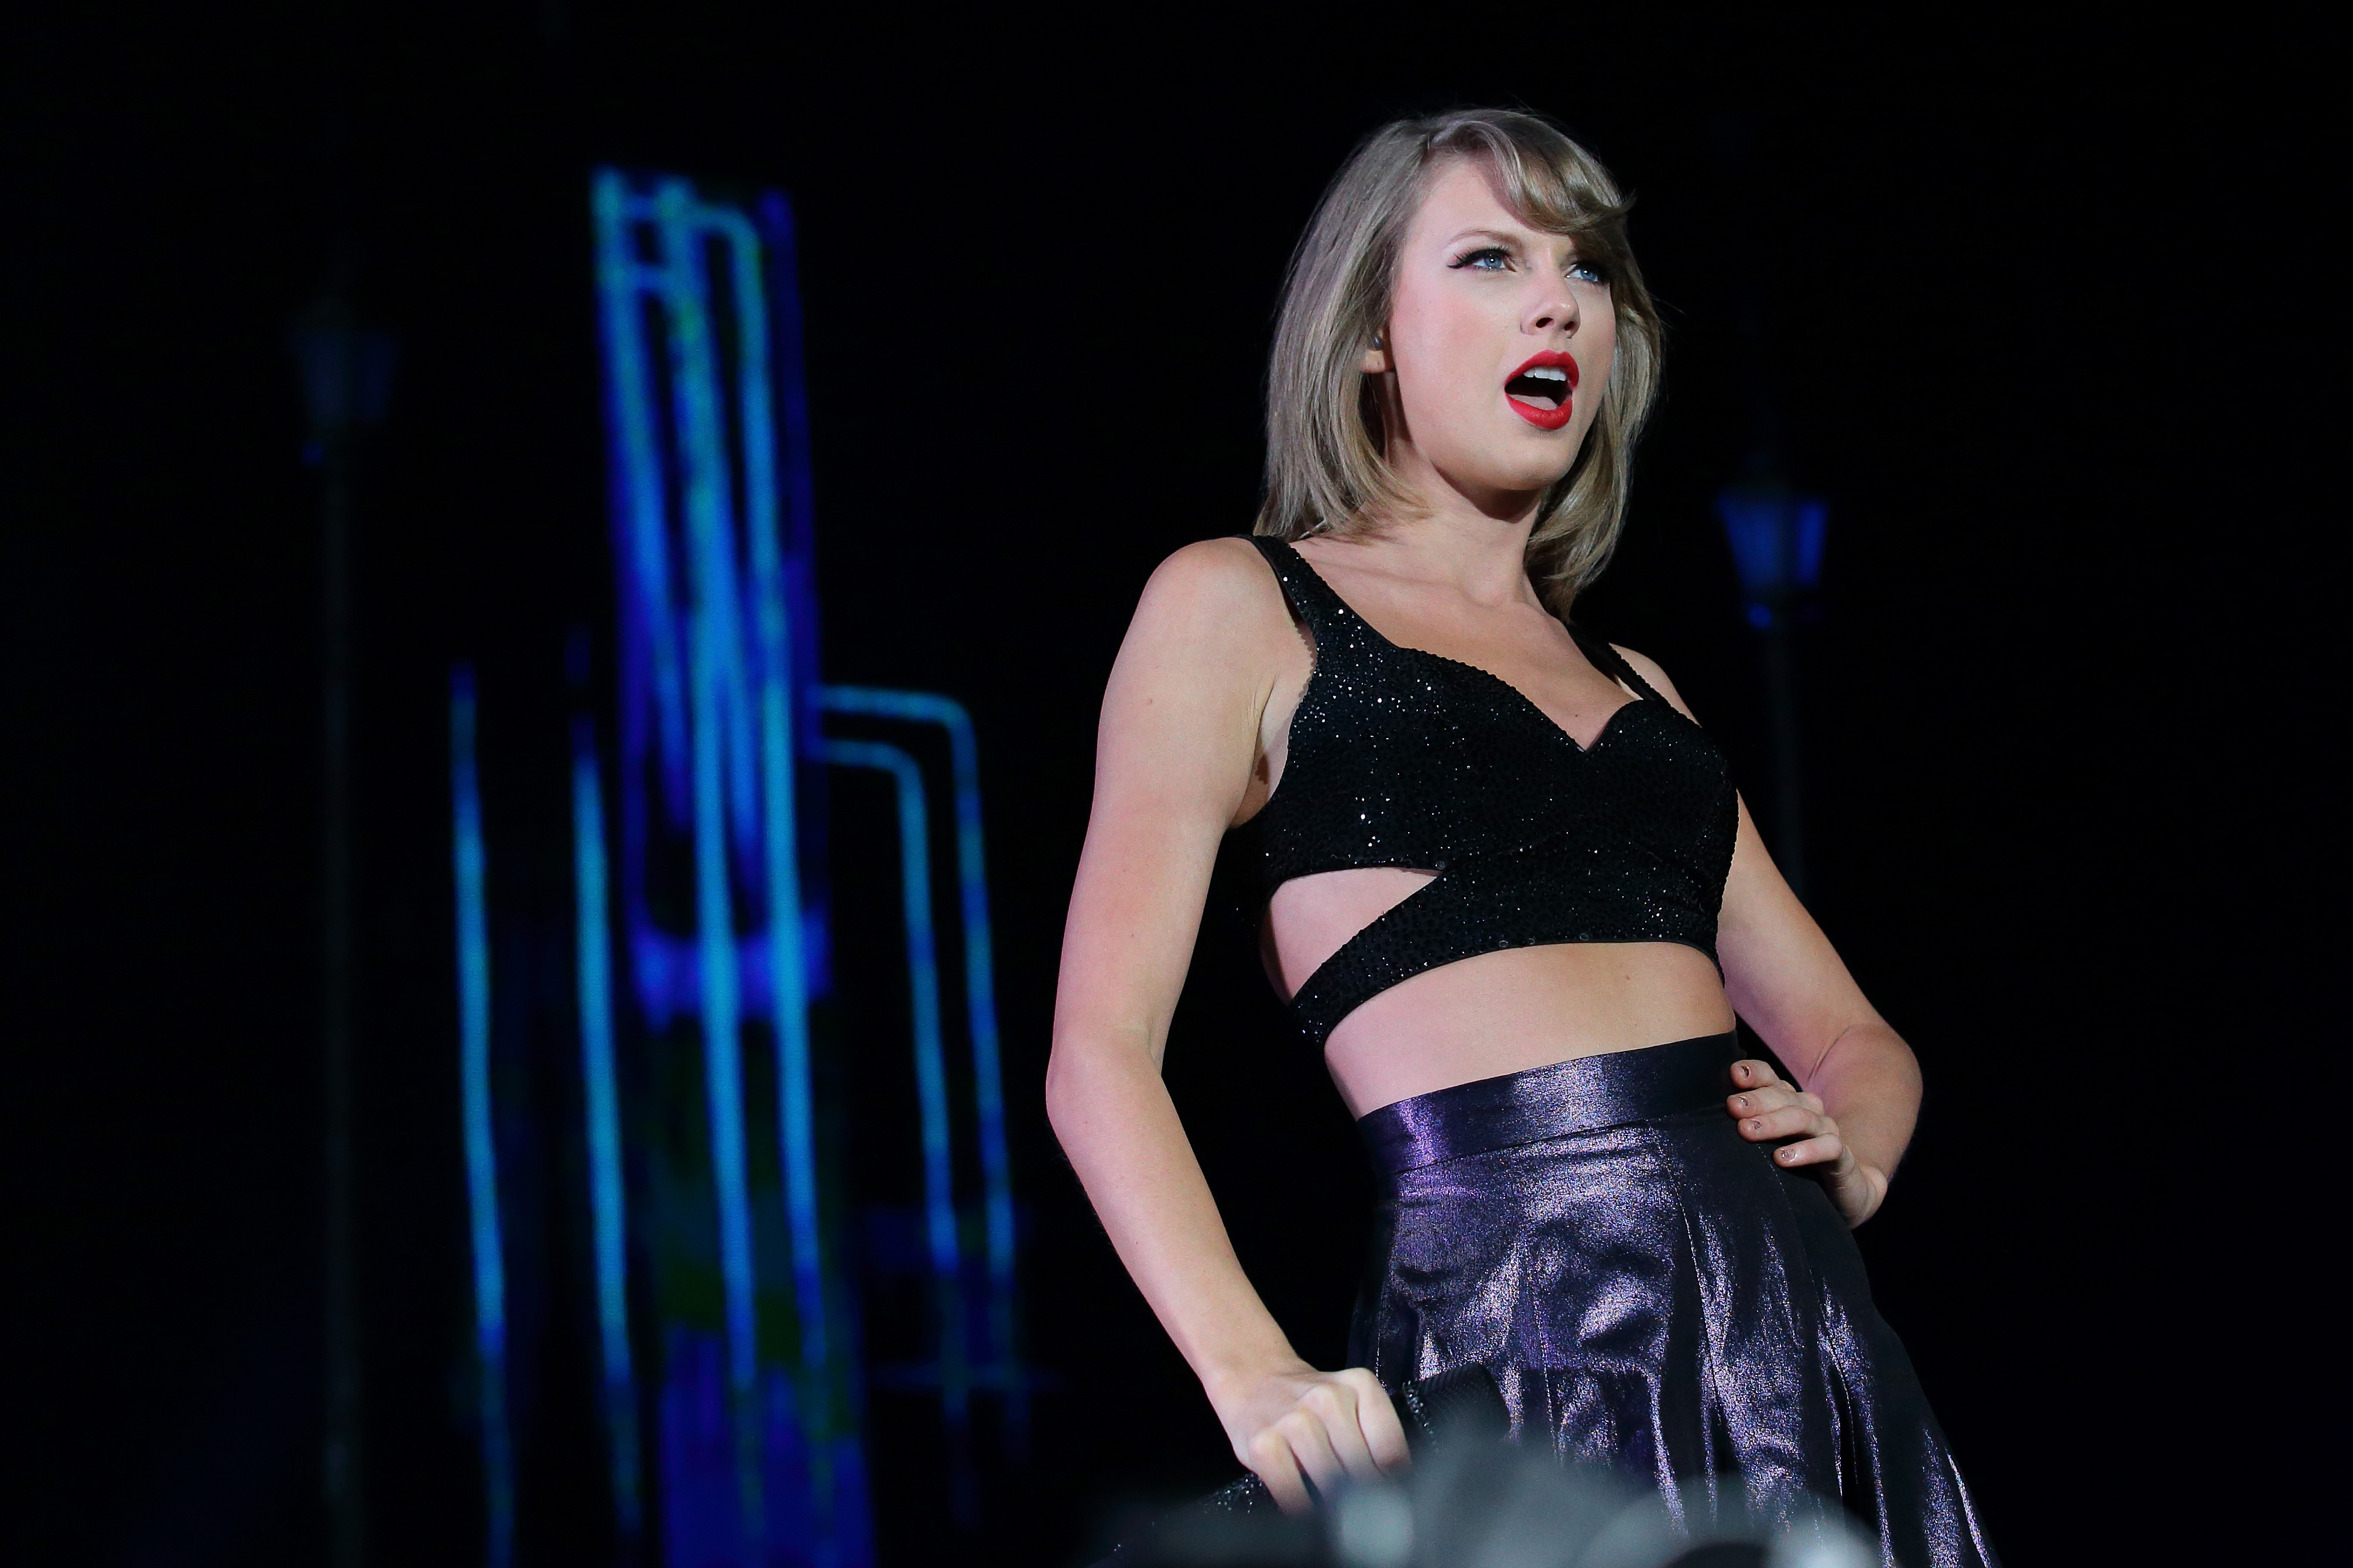 Taylor Swift performs live during the 1989 World Tour Live in Singapore on Nov. 7, 2015.